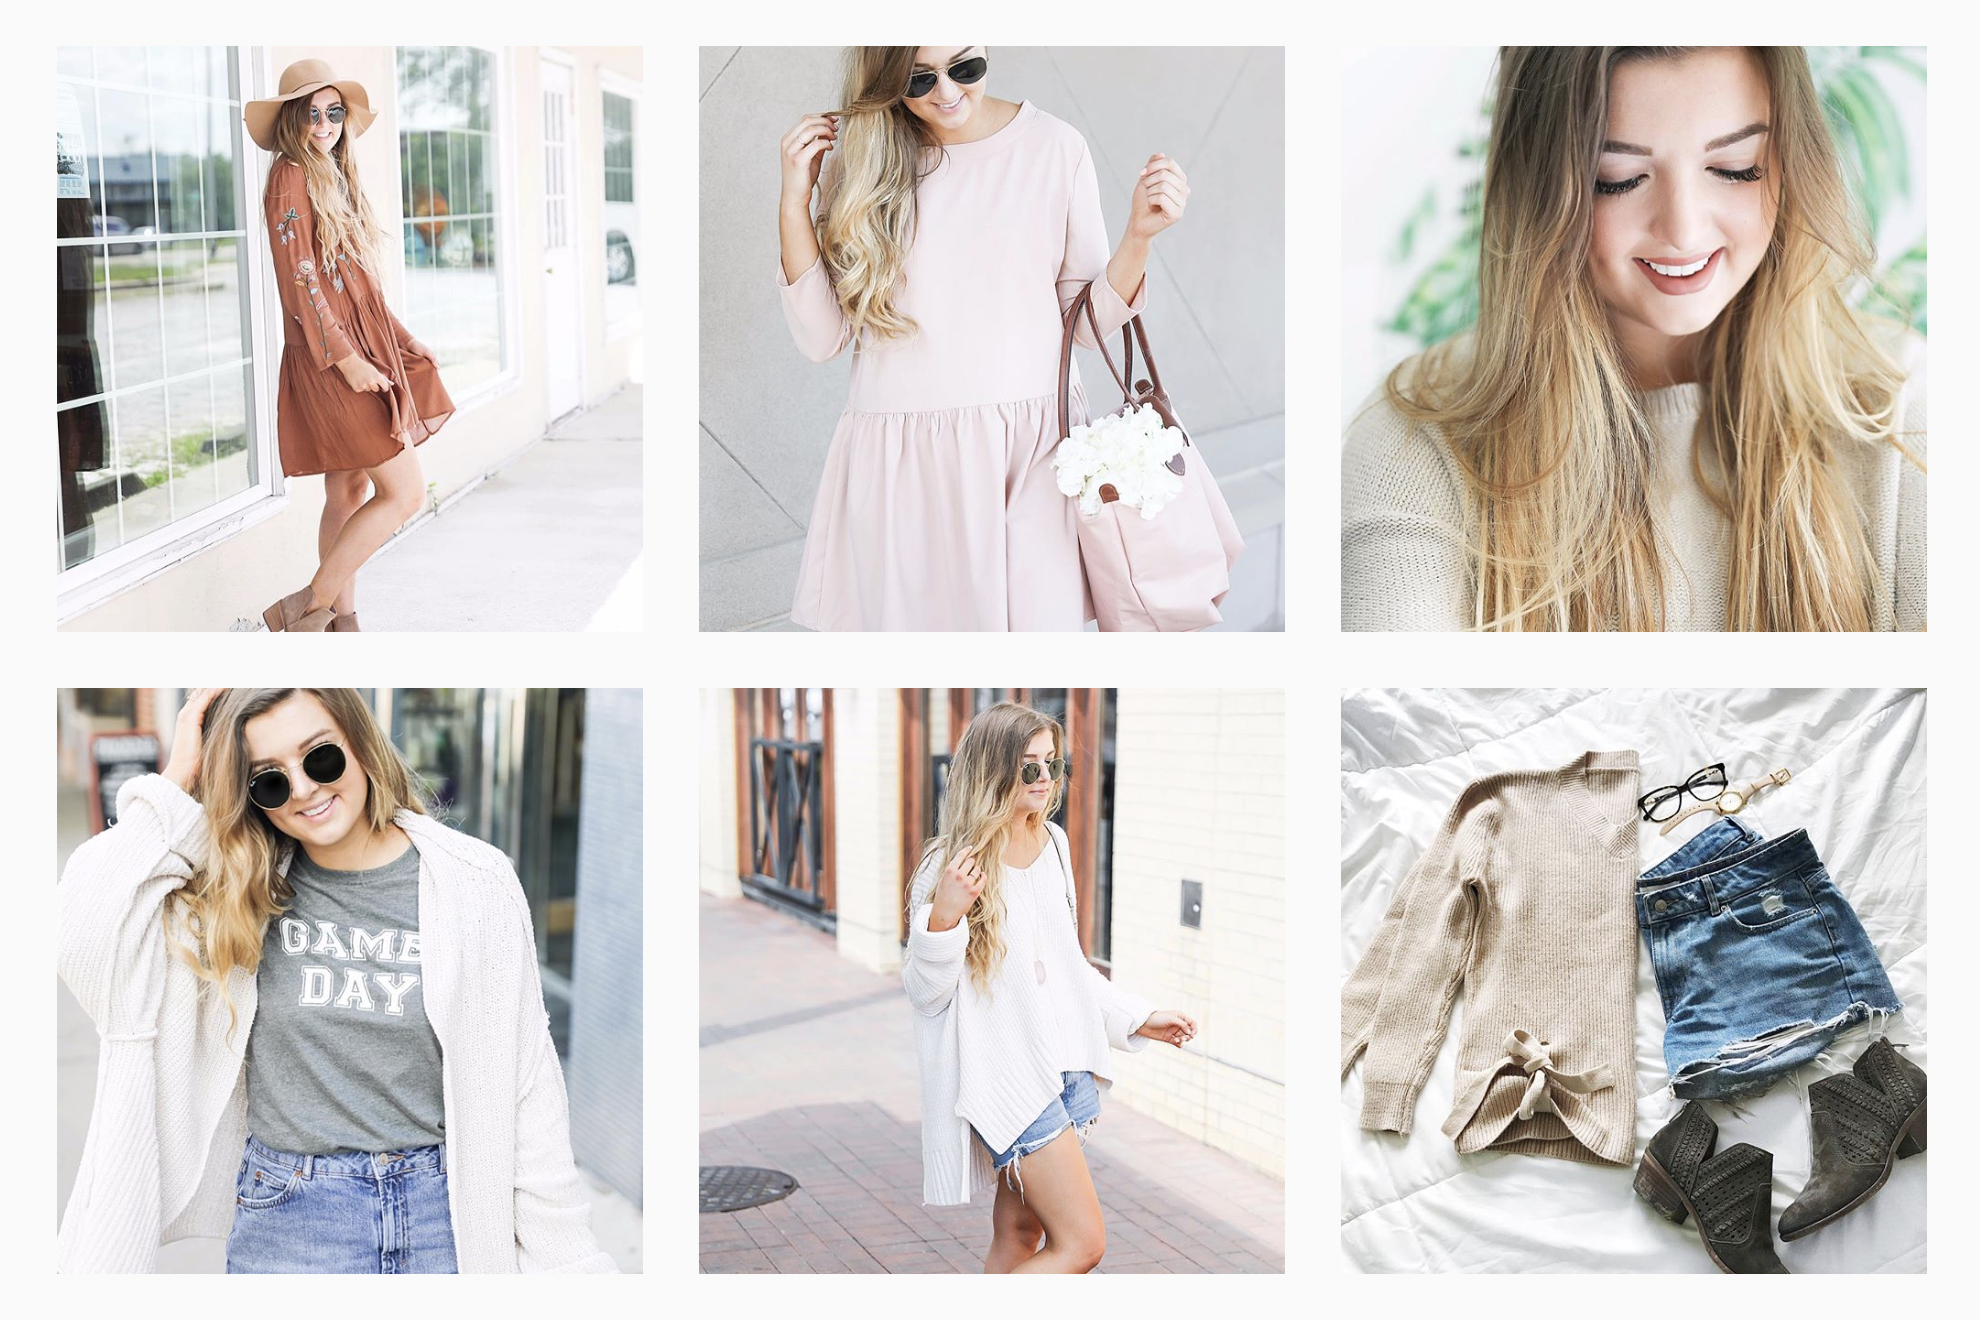 August Instagram Roundup 2017 on fashion Instagram @dailydoseofcharm by fashion blogger daily dose of charm AKA lauren lindmark